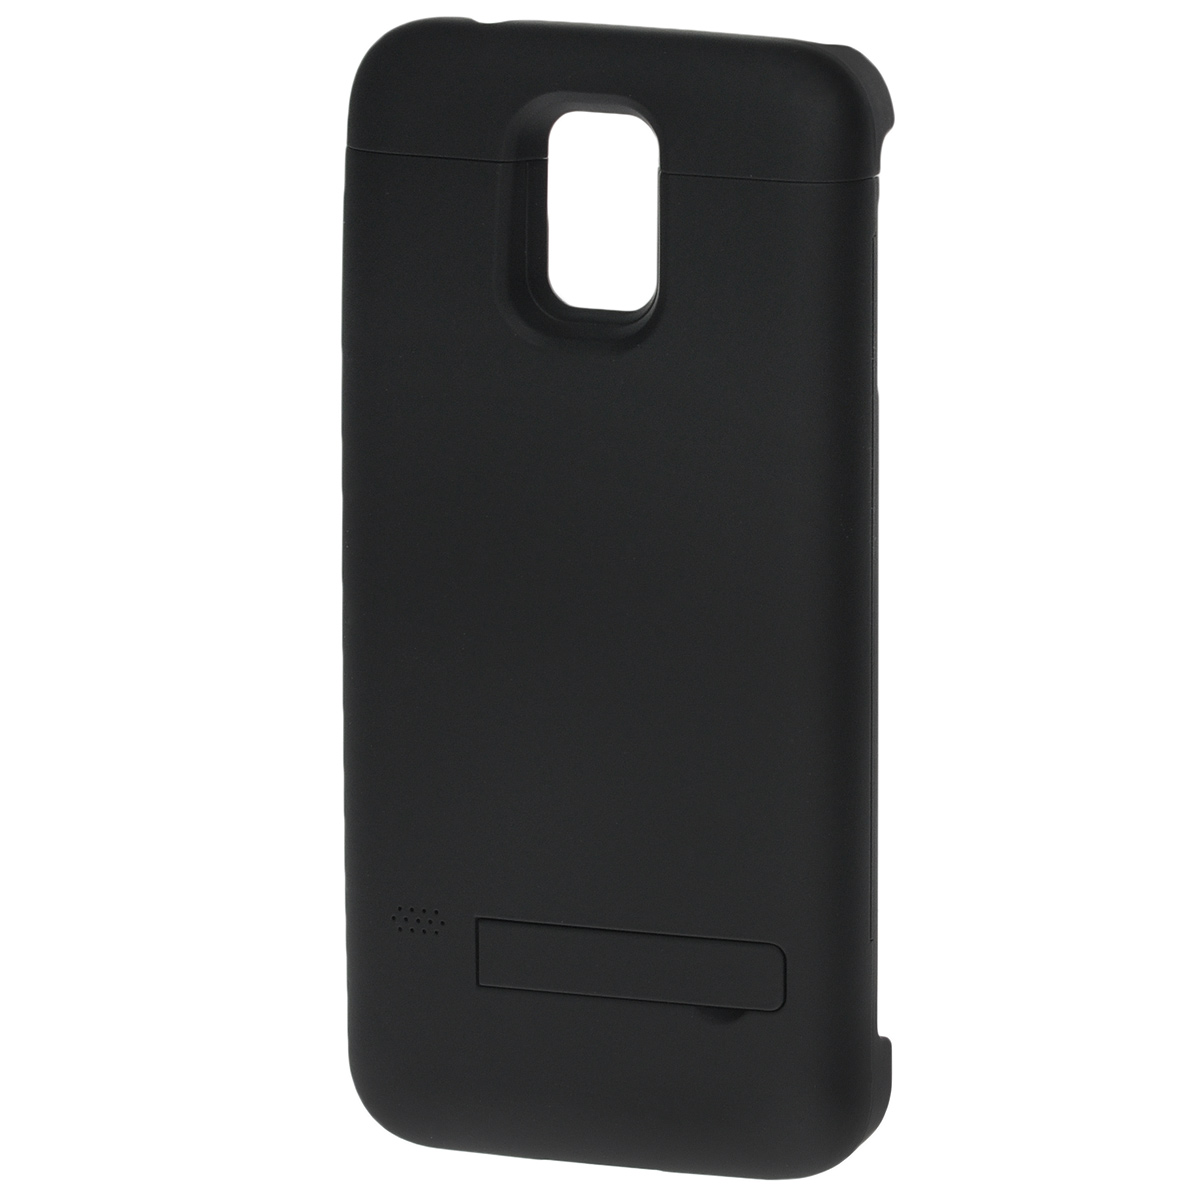 EXEQ HelpinG-SC08 чехол-аккумулятор для Samsung Galaxy S5, Black (3300 мАч, клип-кейс) exeq helping sf02 чехол аккумулятор для samsung galaxy s3 mini white 1900 мач флип кейс